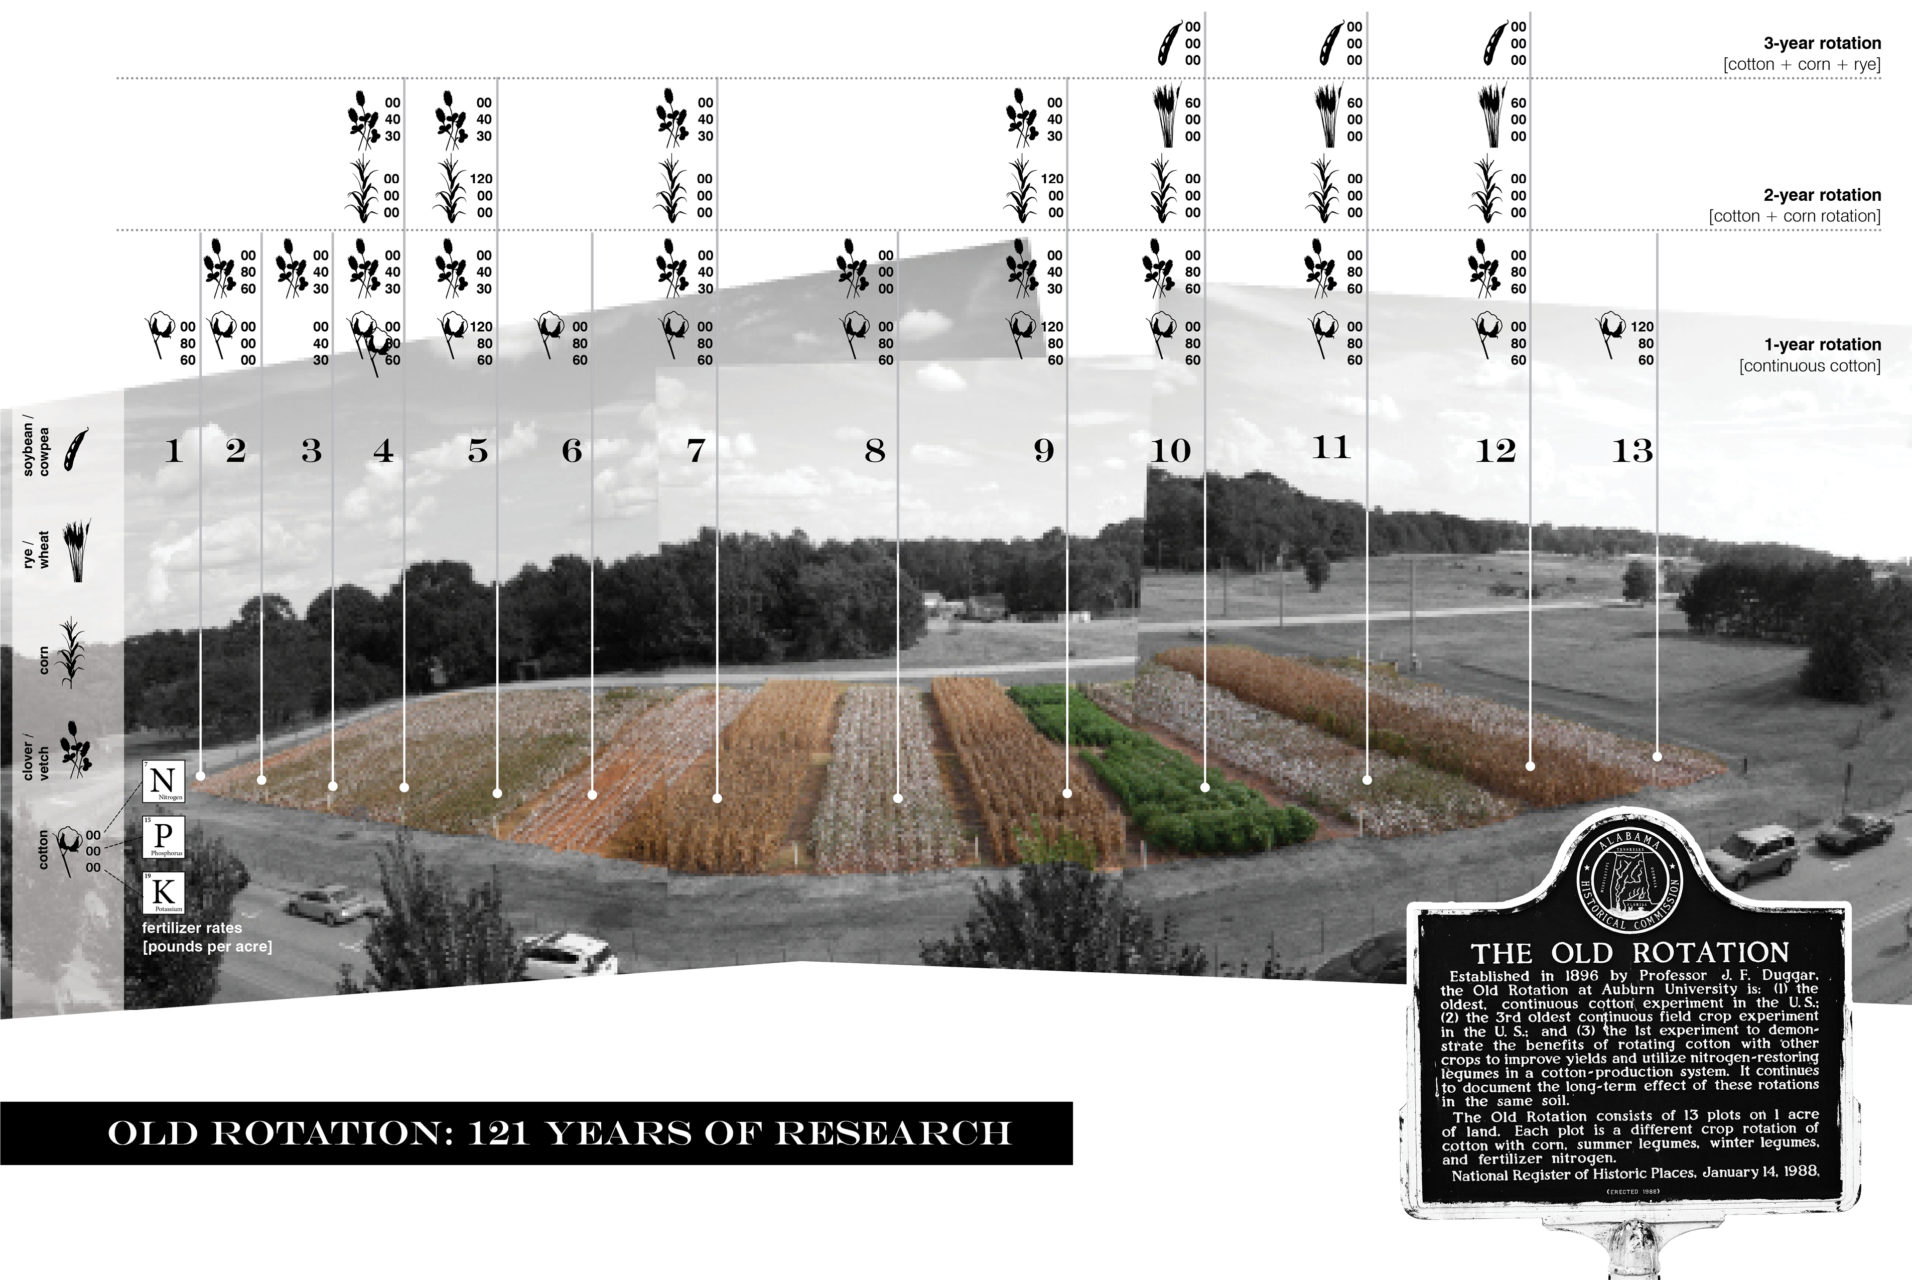 THE OLD ROTATION: Established in 1896 by Professor J.F. Duggar, Auburn's Old Rotation is the longest running continuous cotton experiment in the world. This cropping experiment proved long ago that rotating cotton crops with legumes better sustains soil fertility, which spread across Alabama and forever changed the growing practices of cotton.